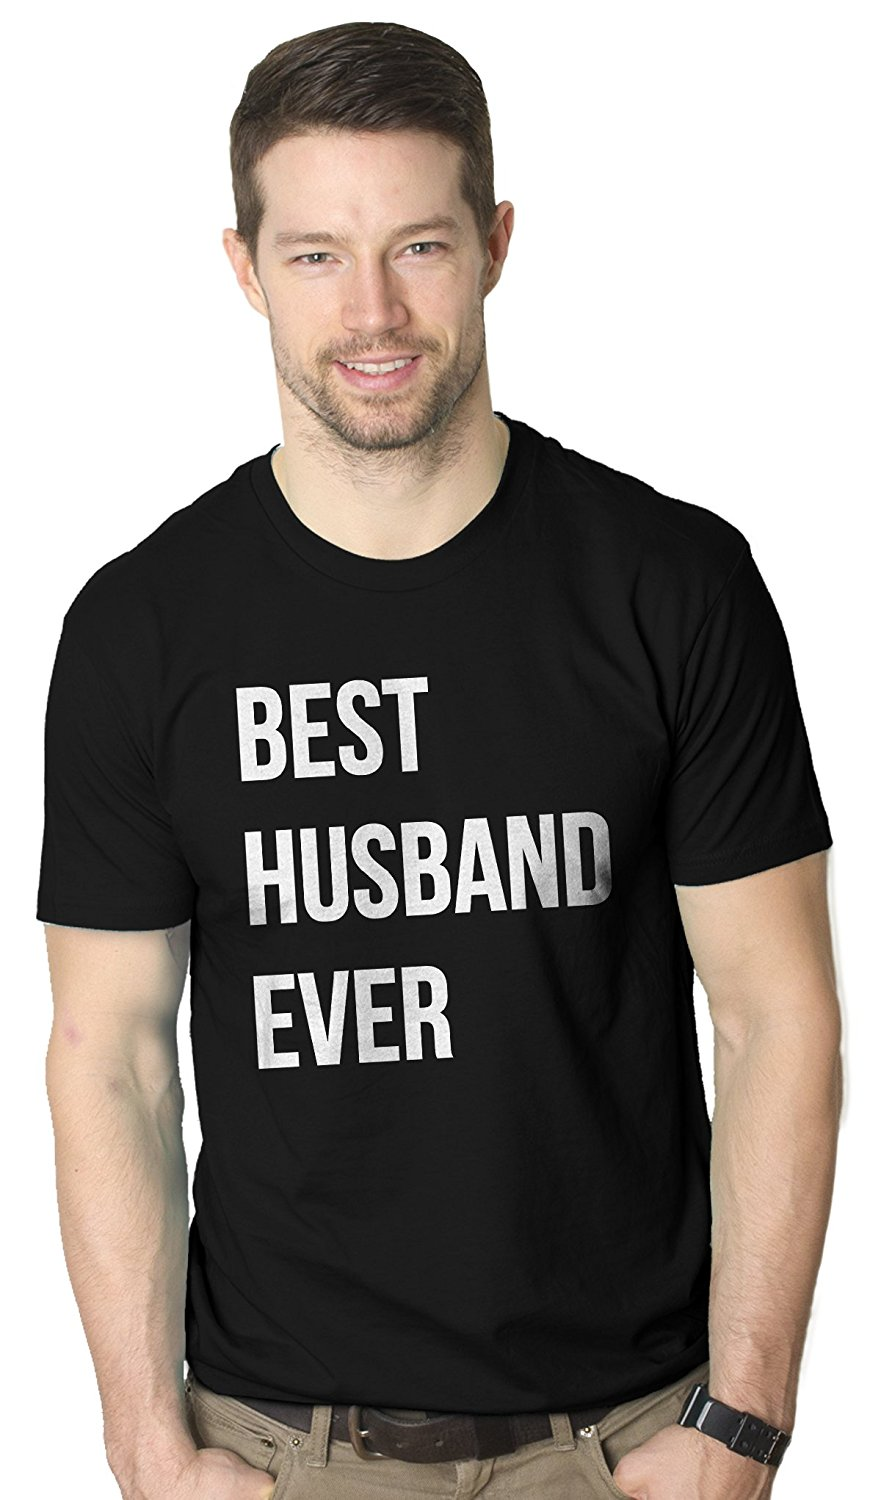 Mens Best Husband Ever T Shirt Funny T-Shirts for Dad Fathers Day Gift Sarcasm Wedding Men Great Quality Funny Man Cotton